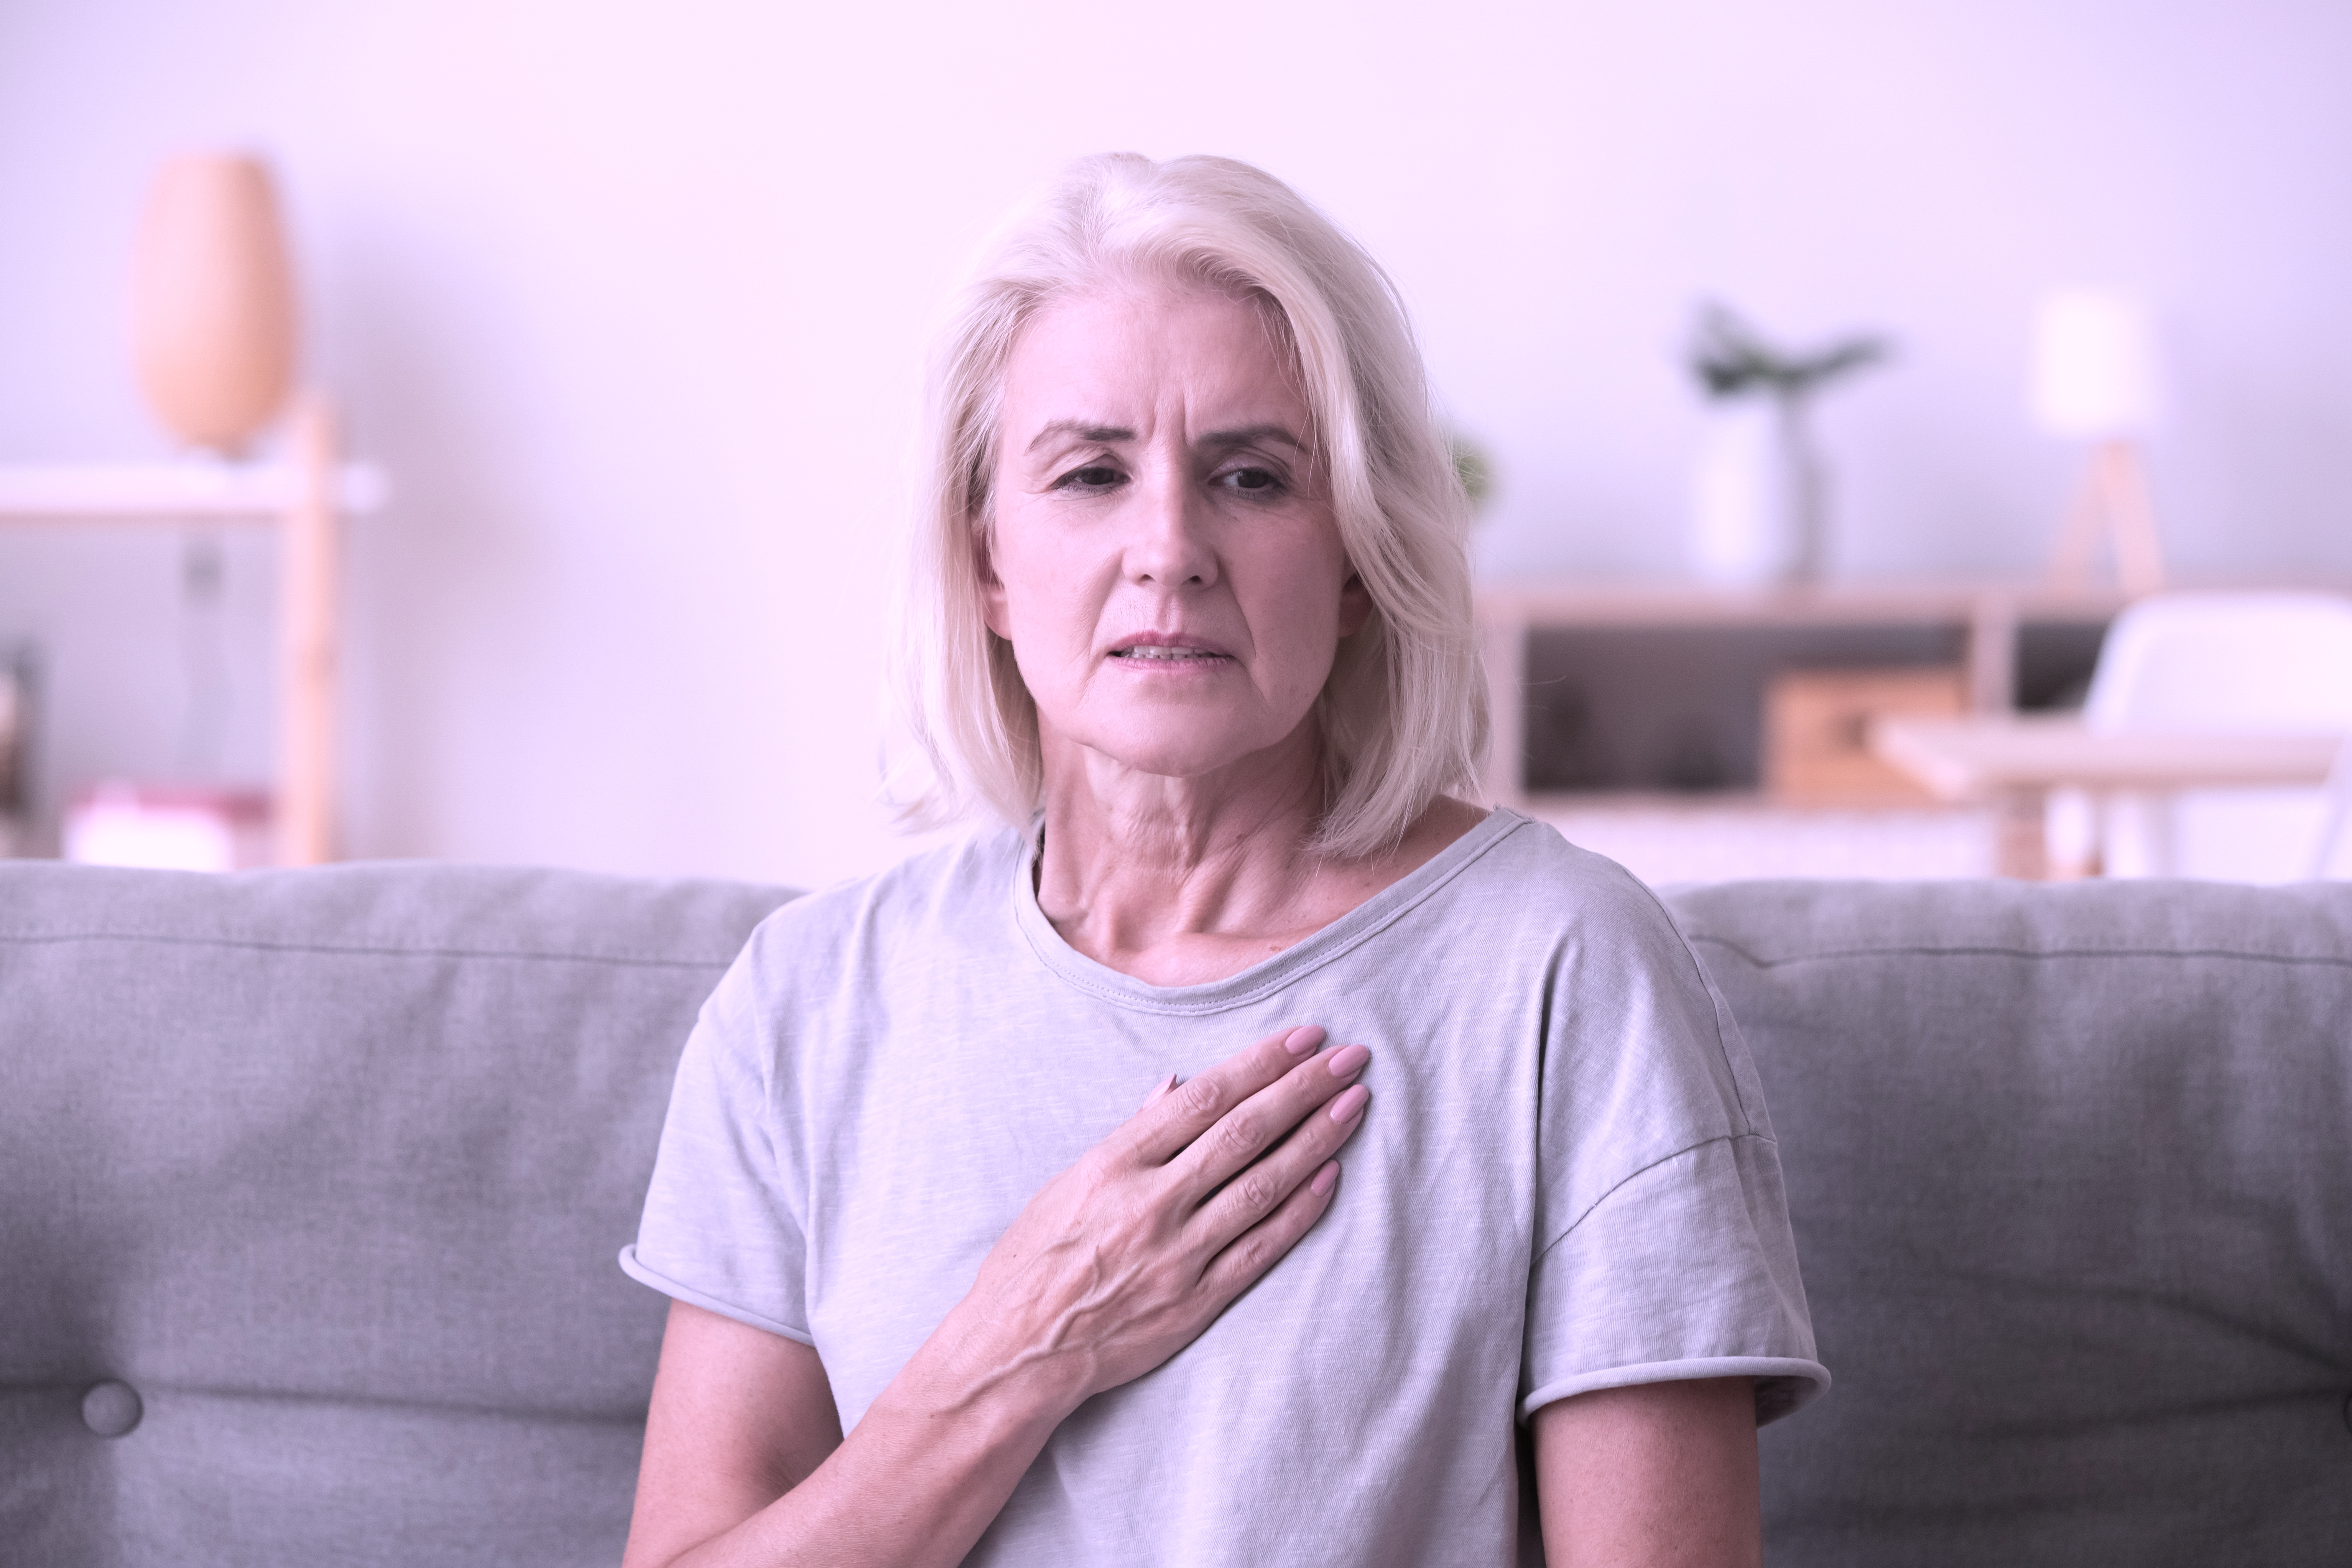 Chest Pain: Can Imminent Heart Attack Be Misdiagnosed in ER?